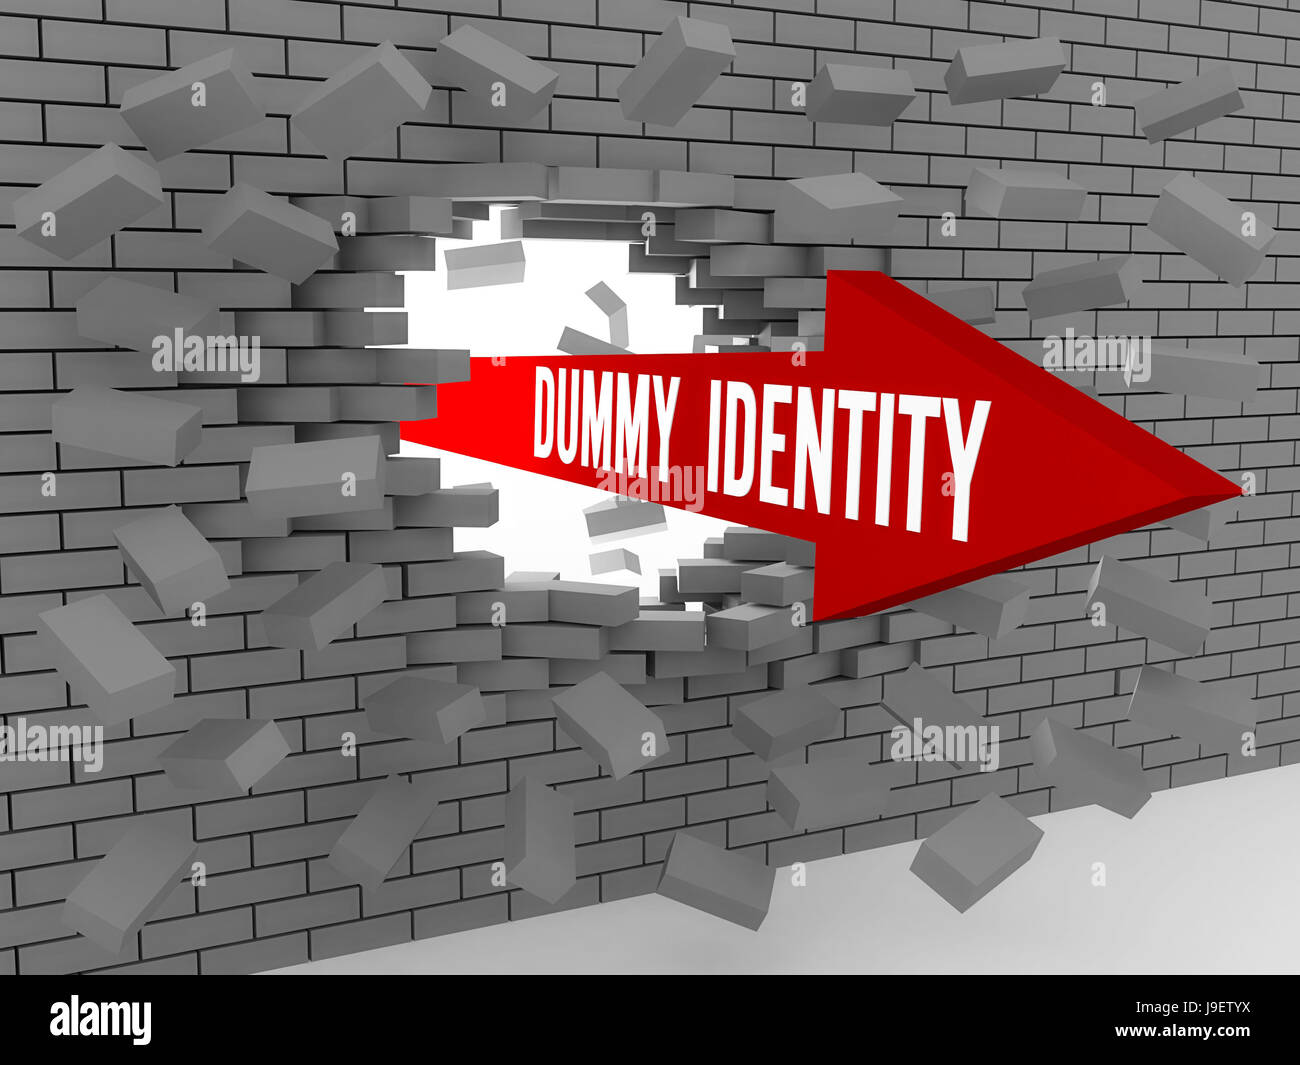 Arrow with words Dummy Identity breaking brick wall. Concept 3D illustration. - Stock Image